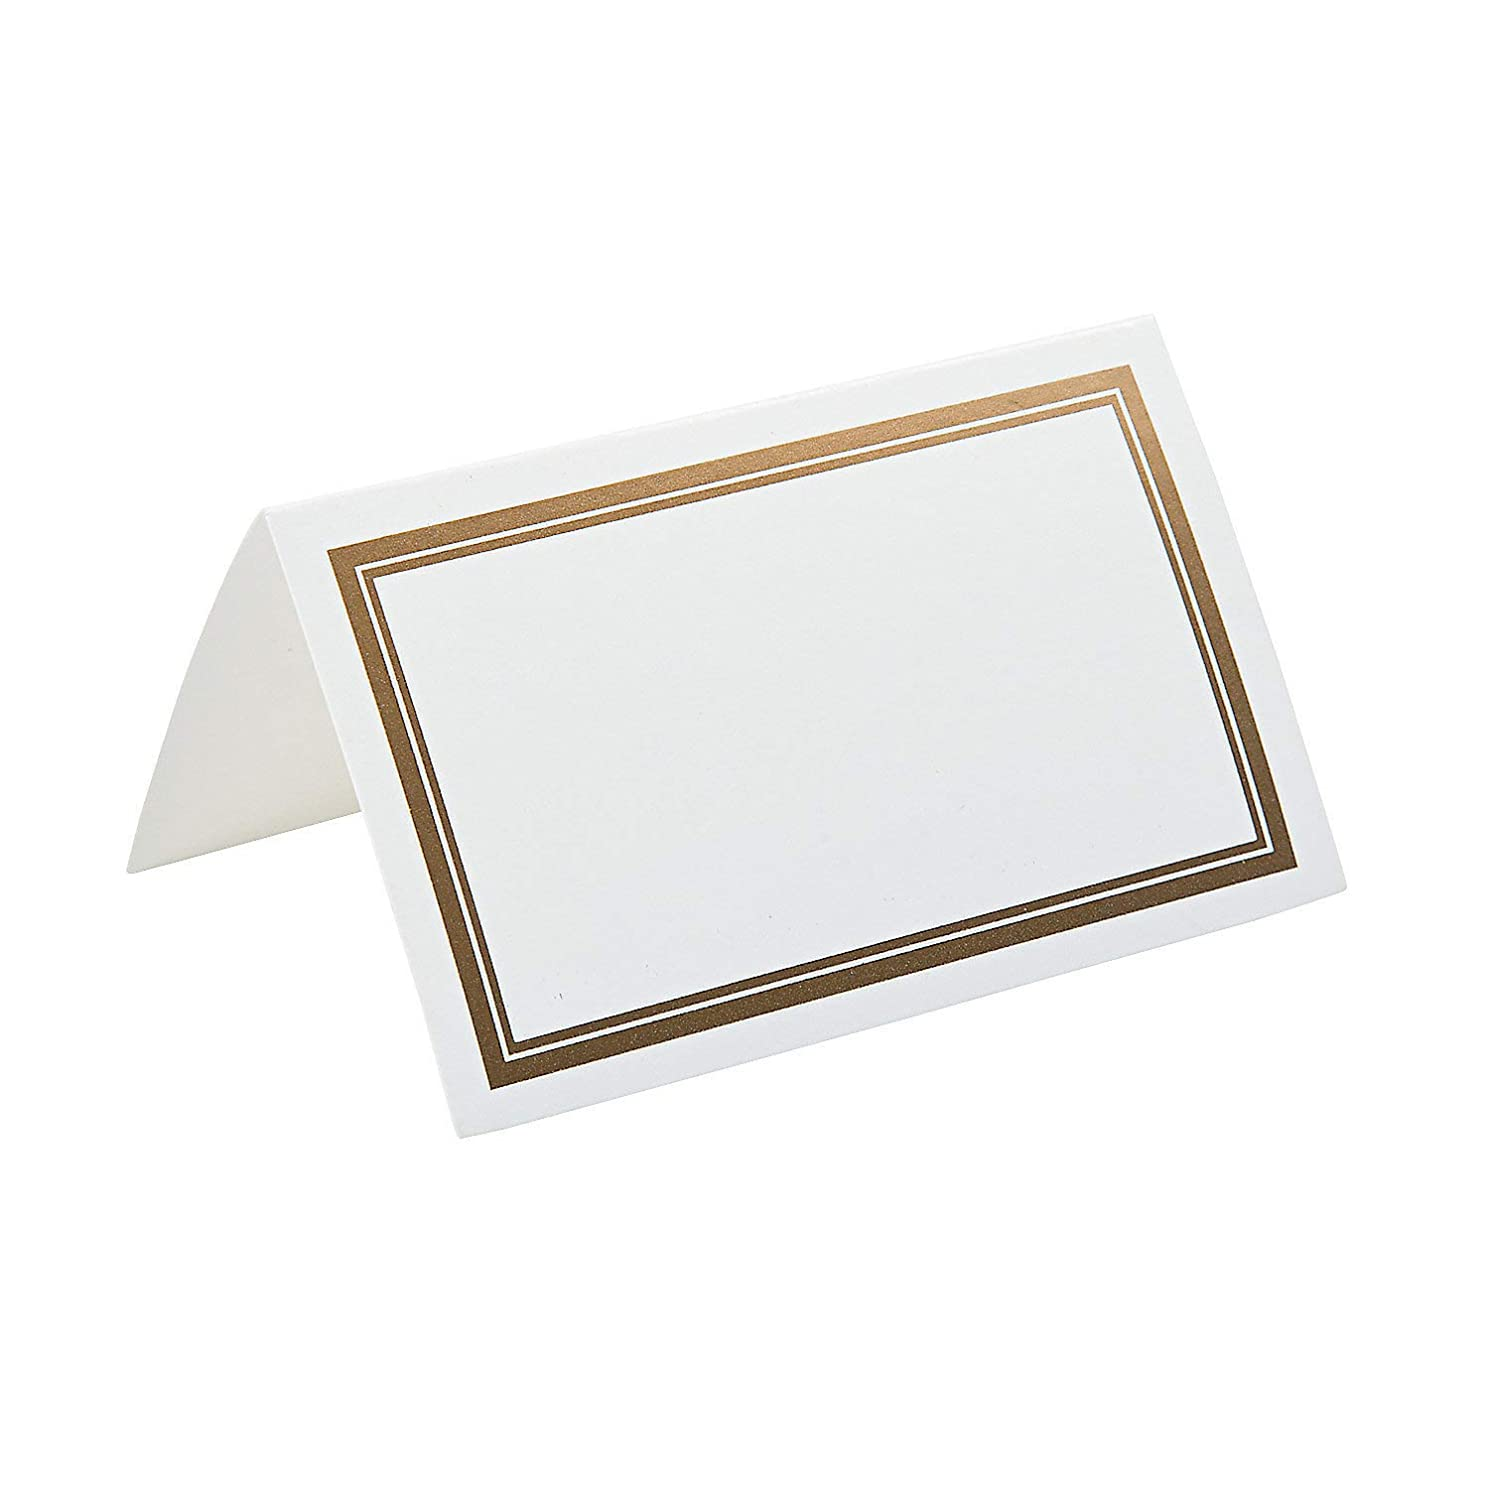 Fun Express Gold Rimmed Place Cards for Wedding - Party Supplies - Favors - Placecards and Holders - Wedding - 50 Pieces